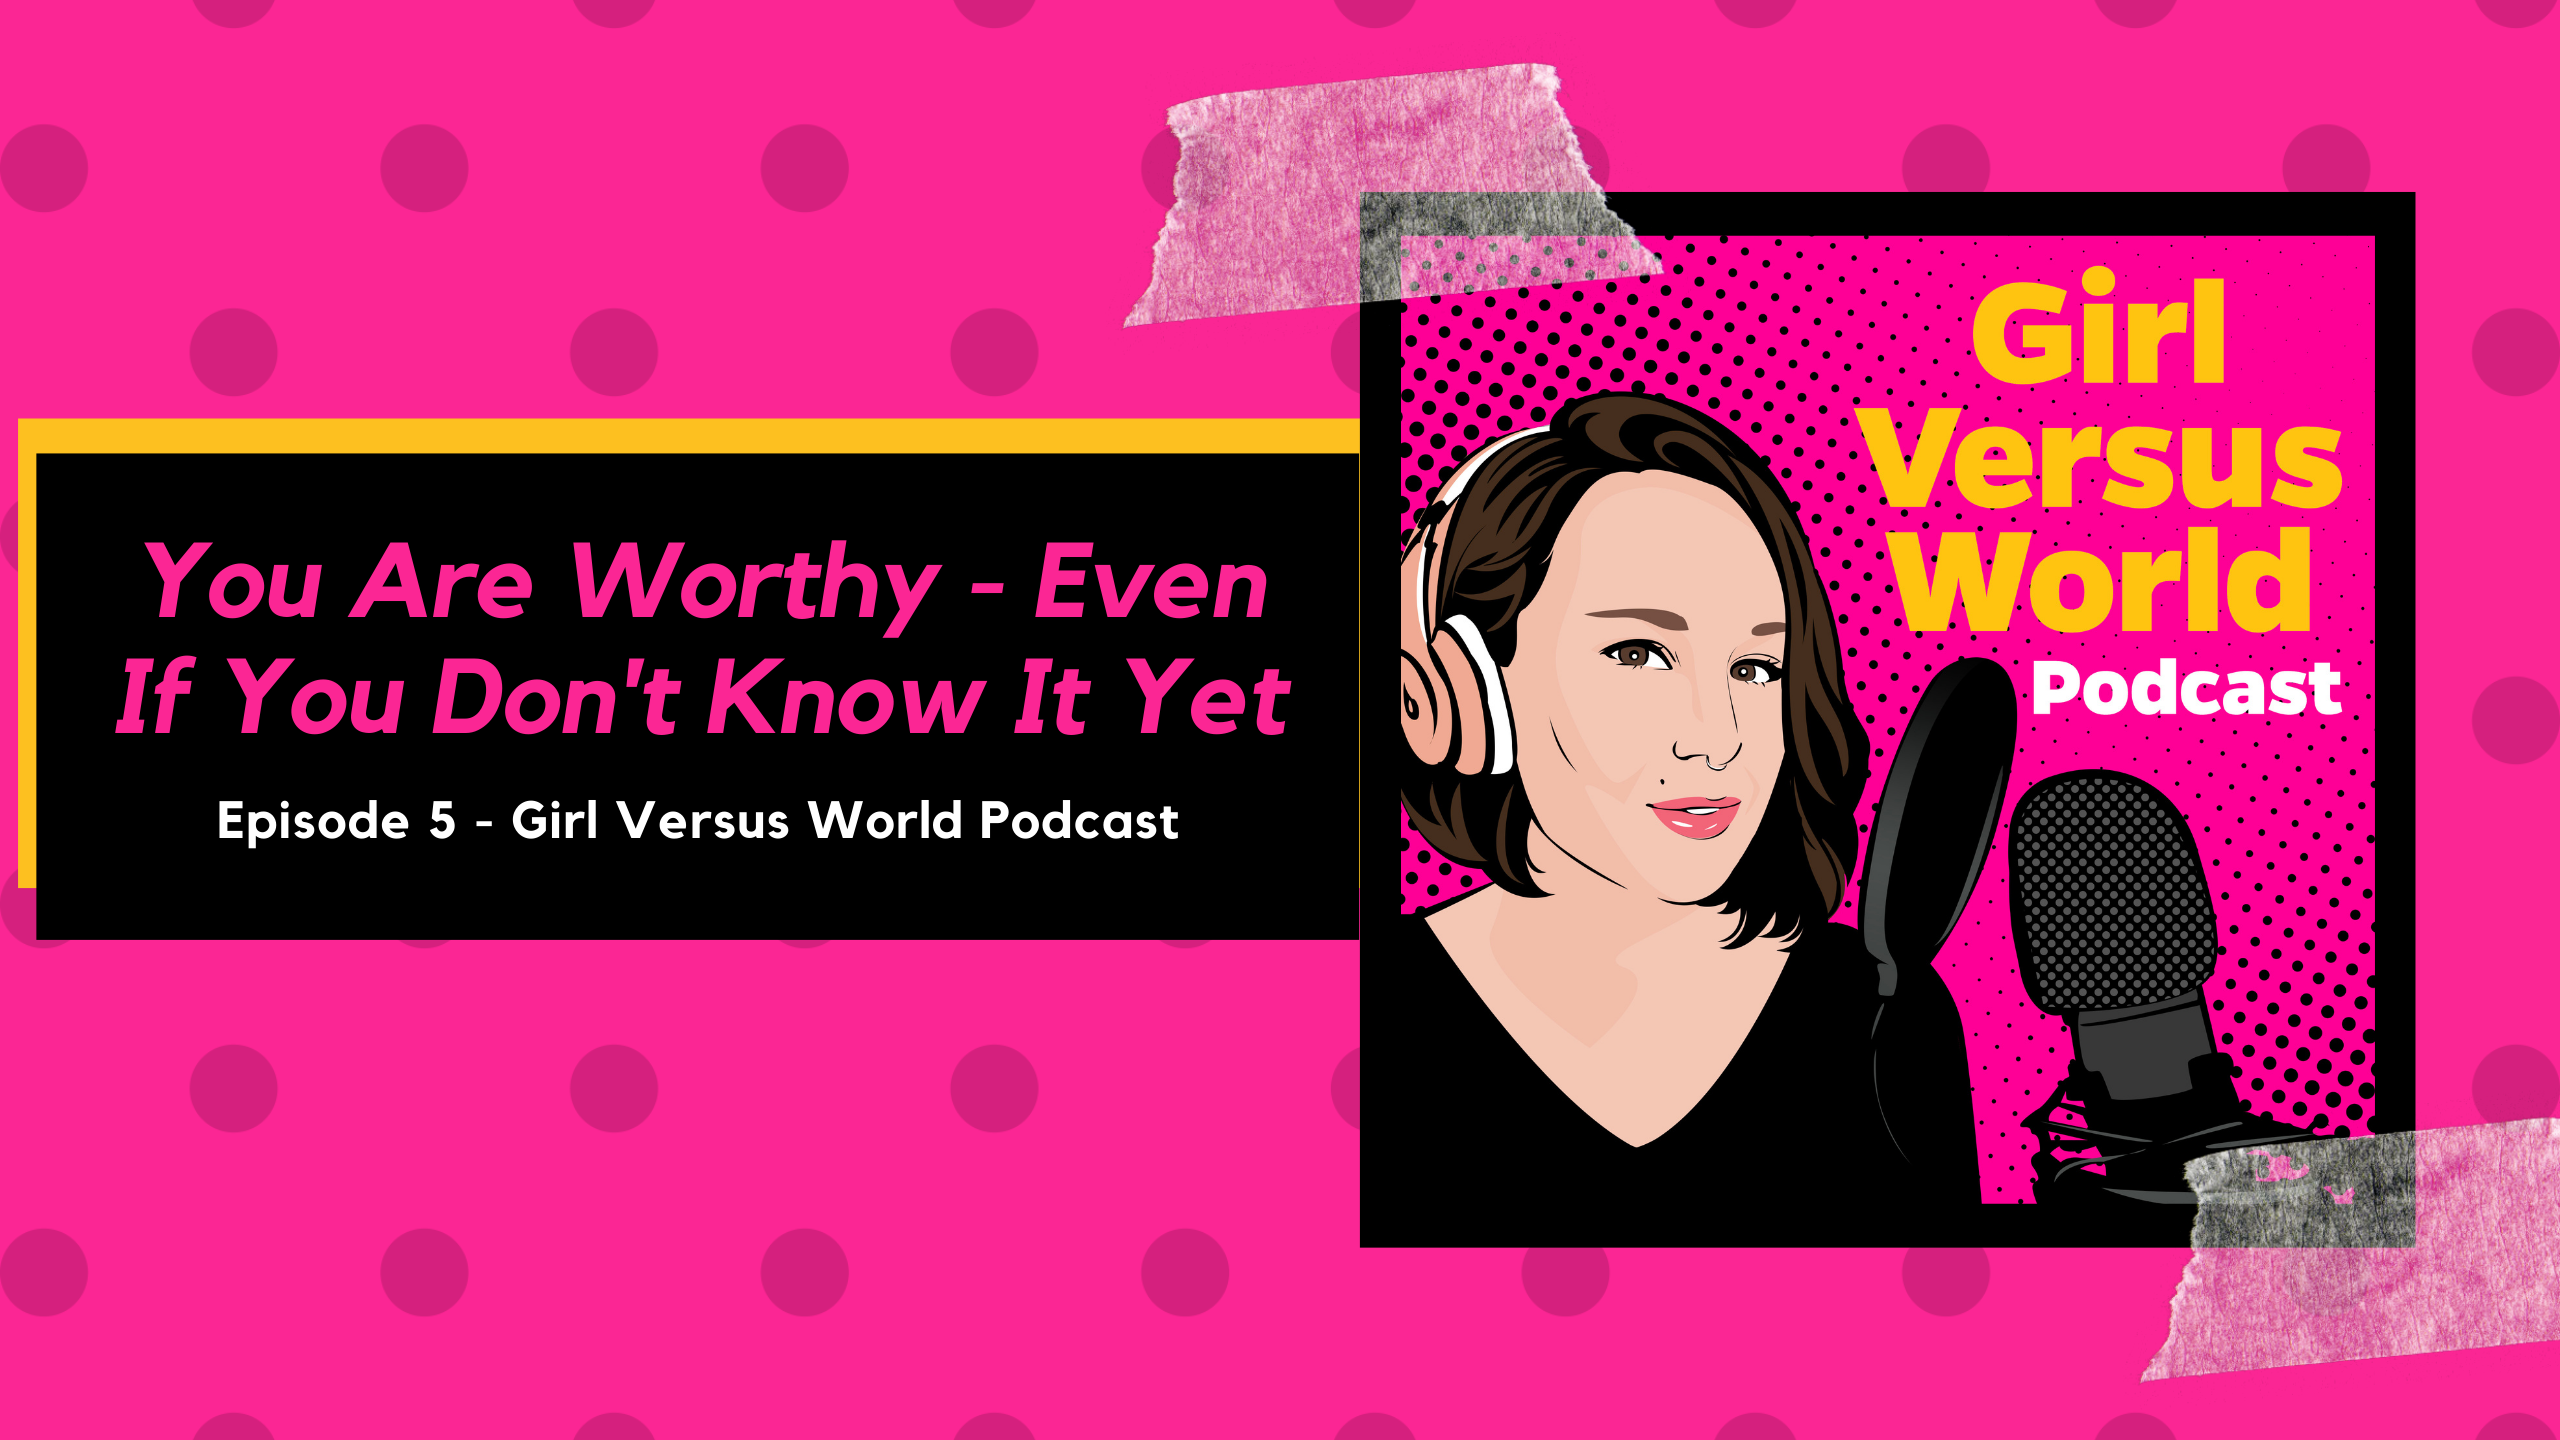 Podcast Episode 5: You Are Worthy Even If You Don't Believe It Yet